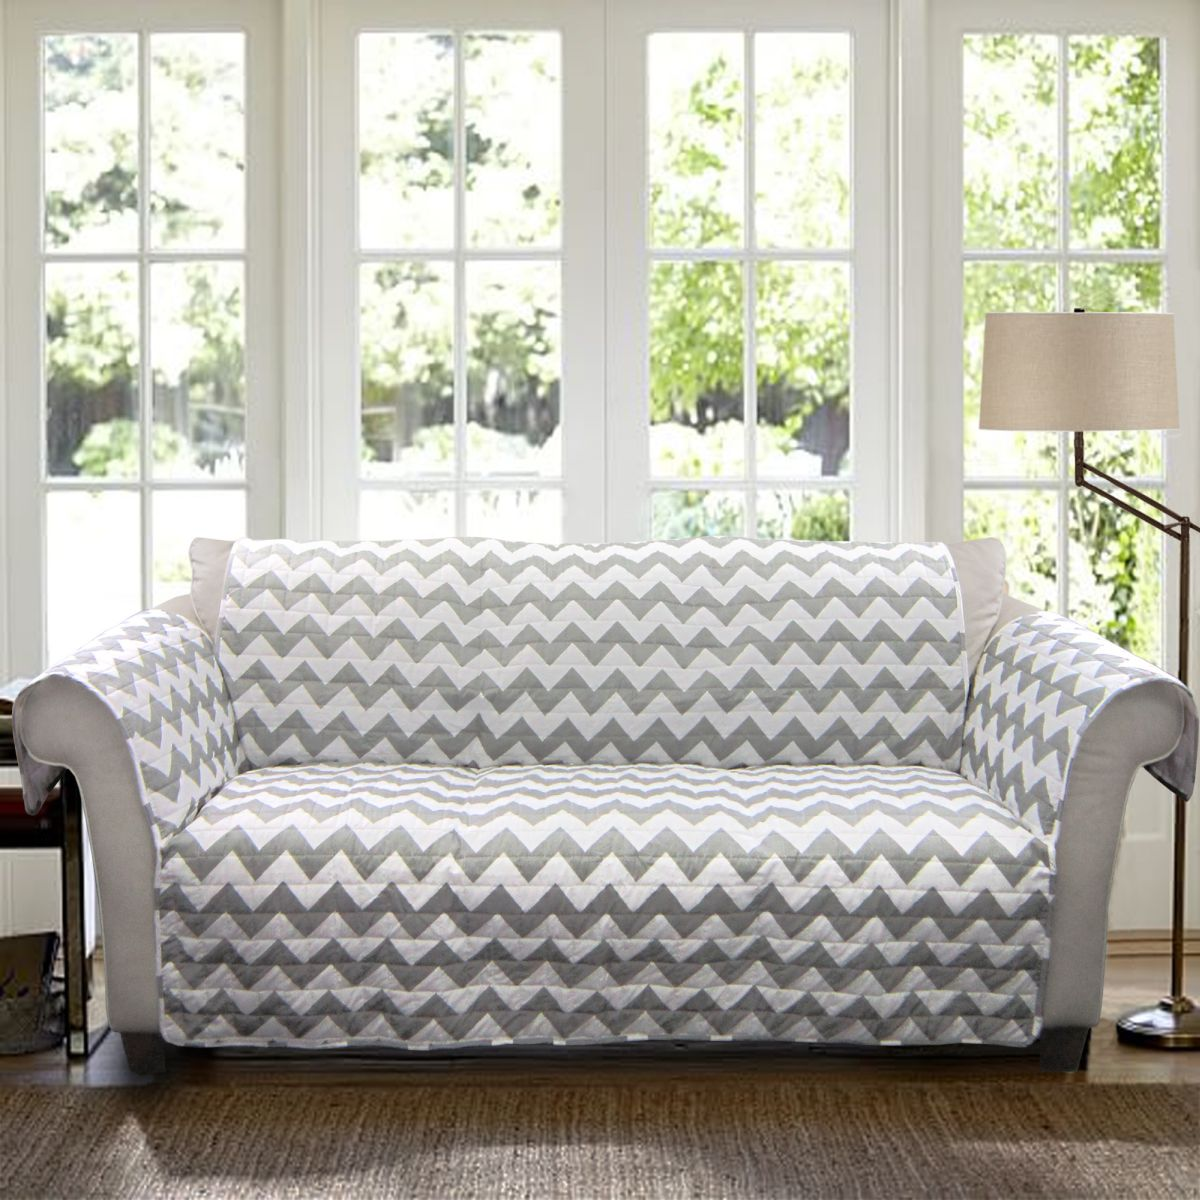 Chevron sofa two seater